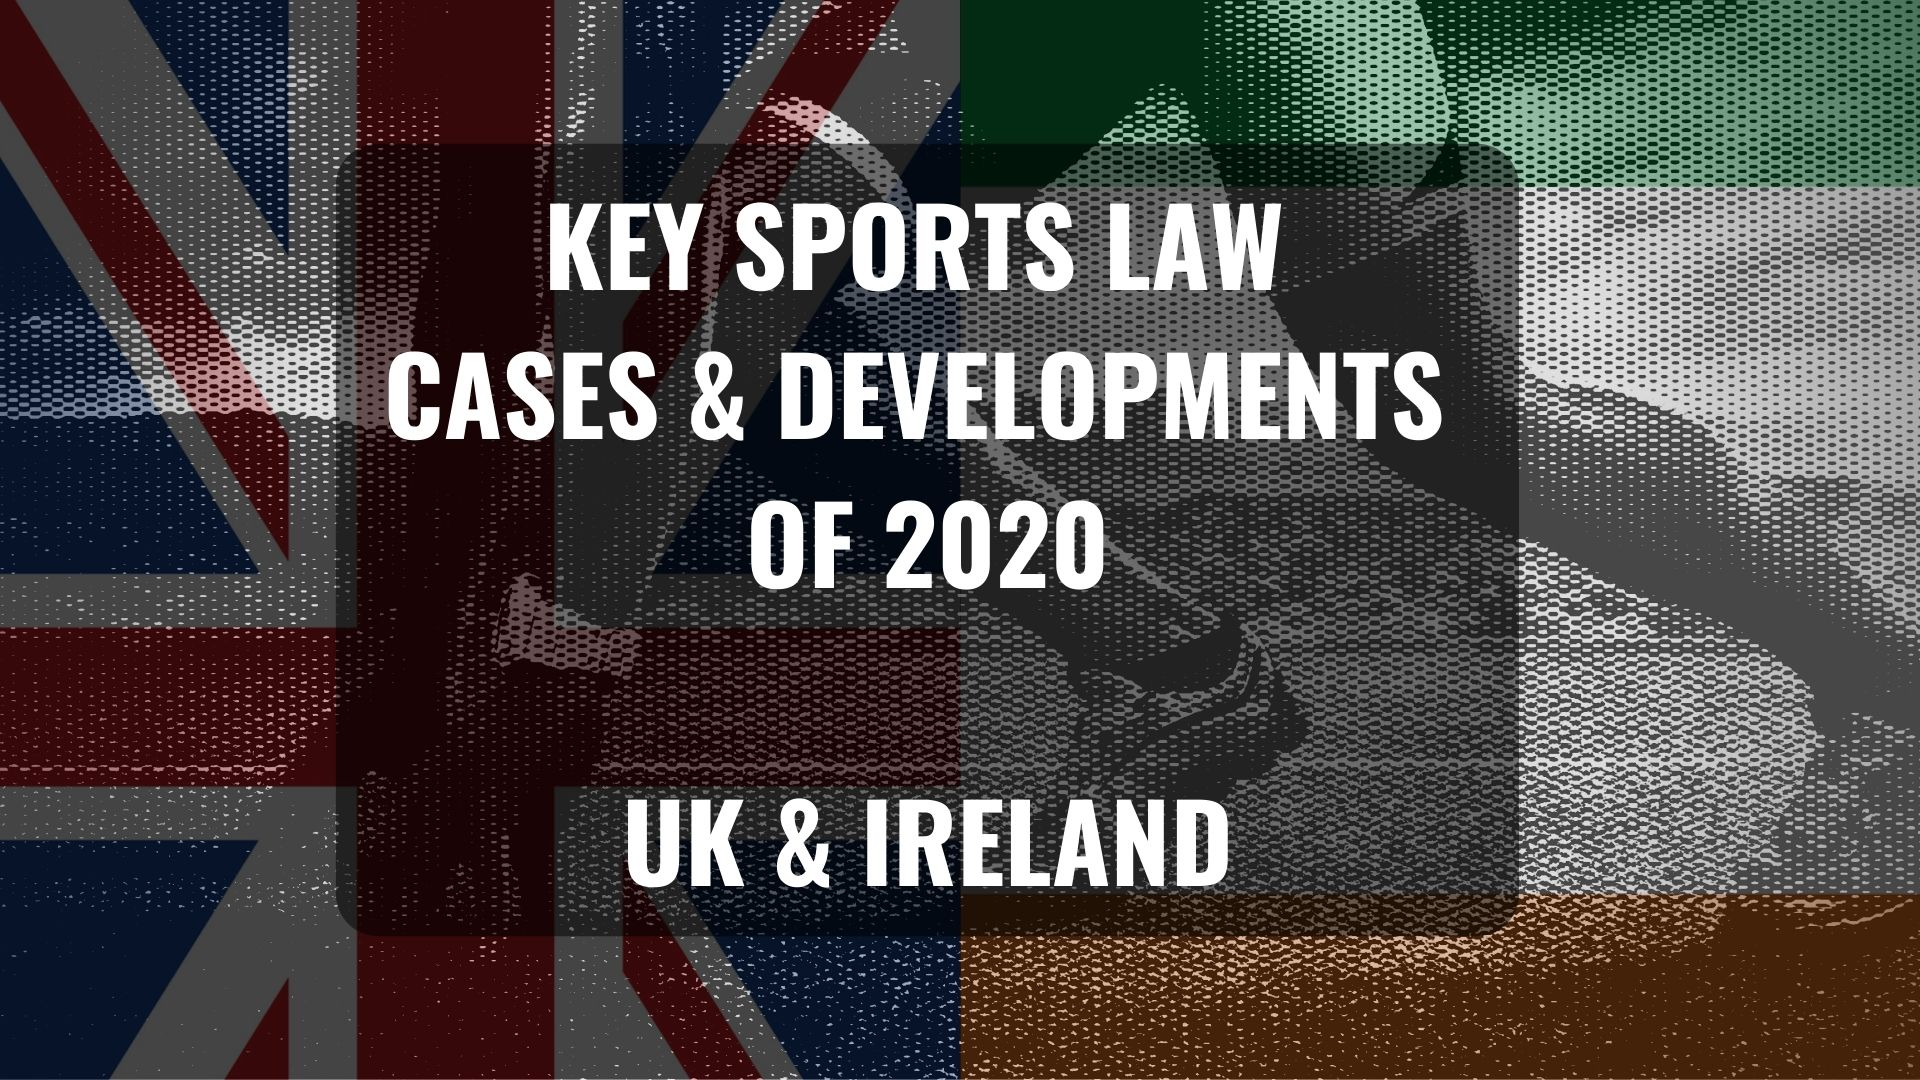 Key sports law cases and developments of 2020 – UK & Ireland